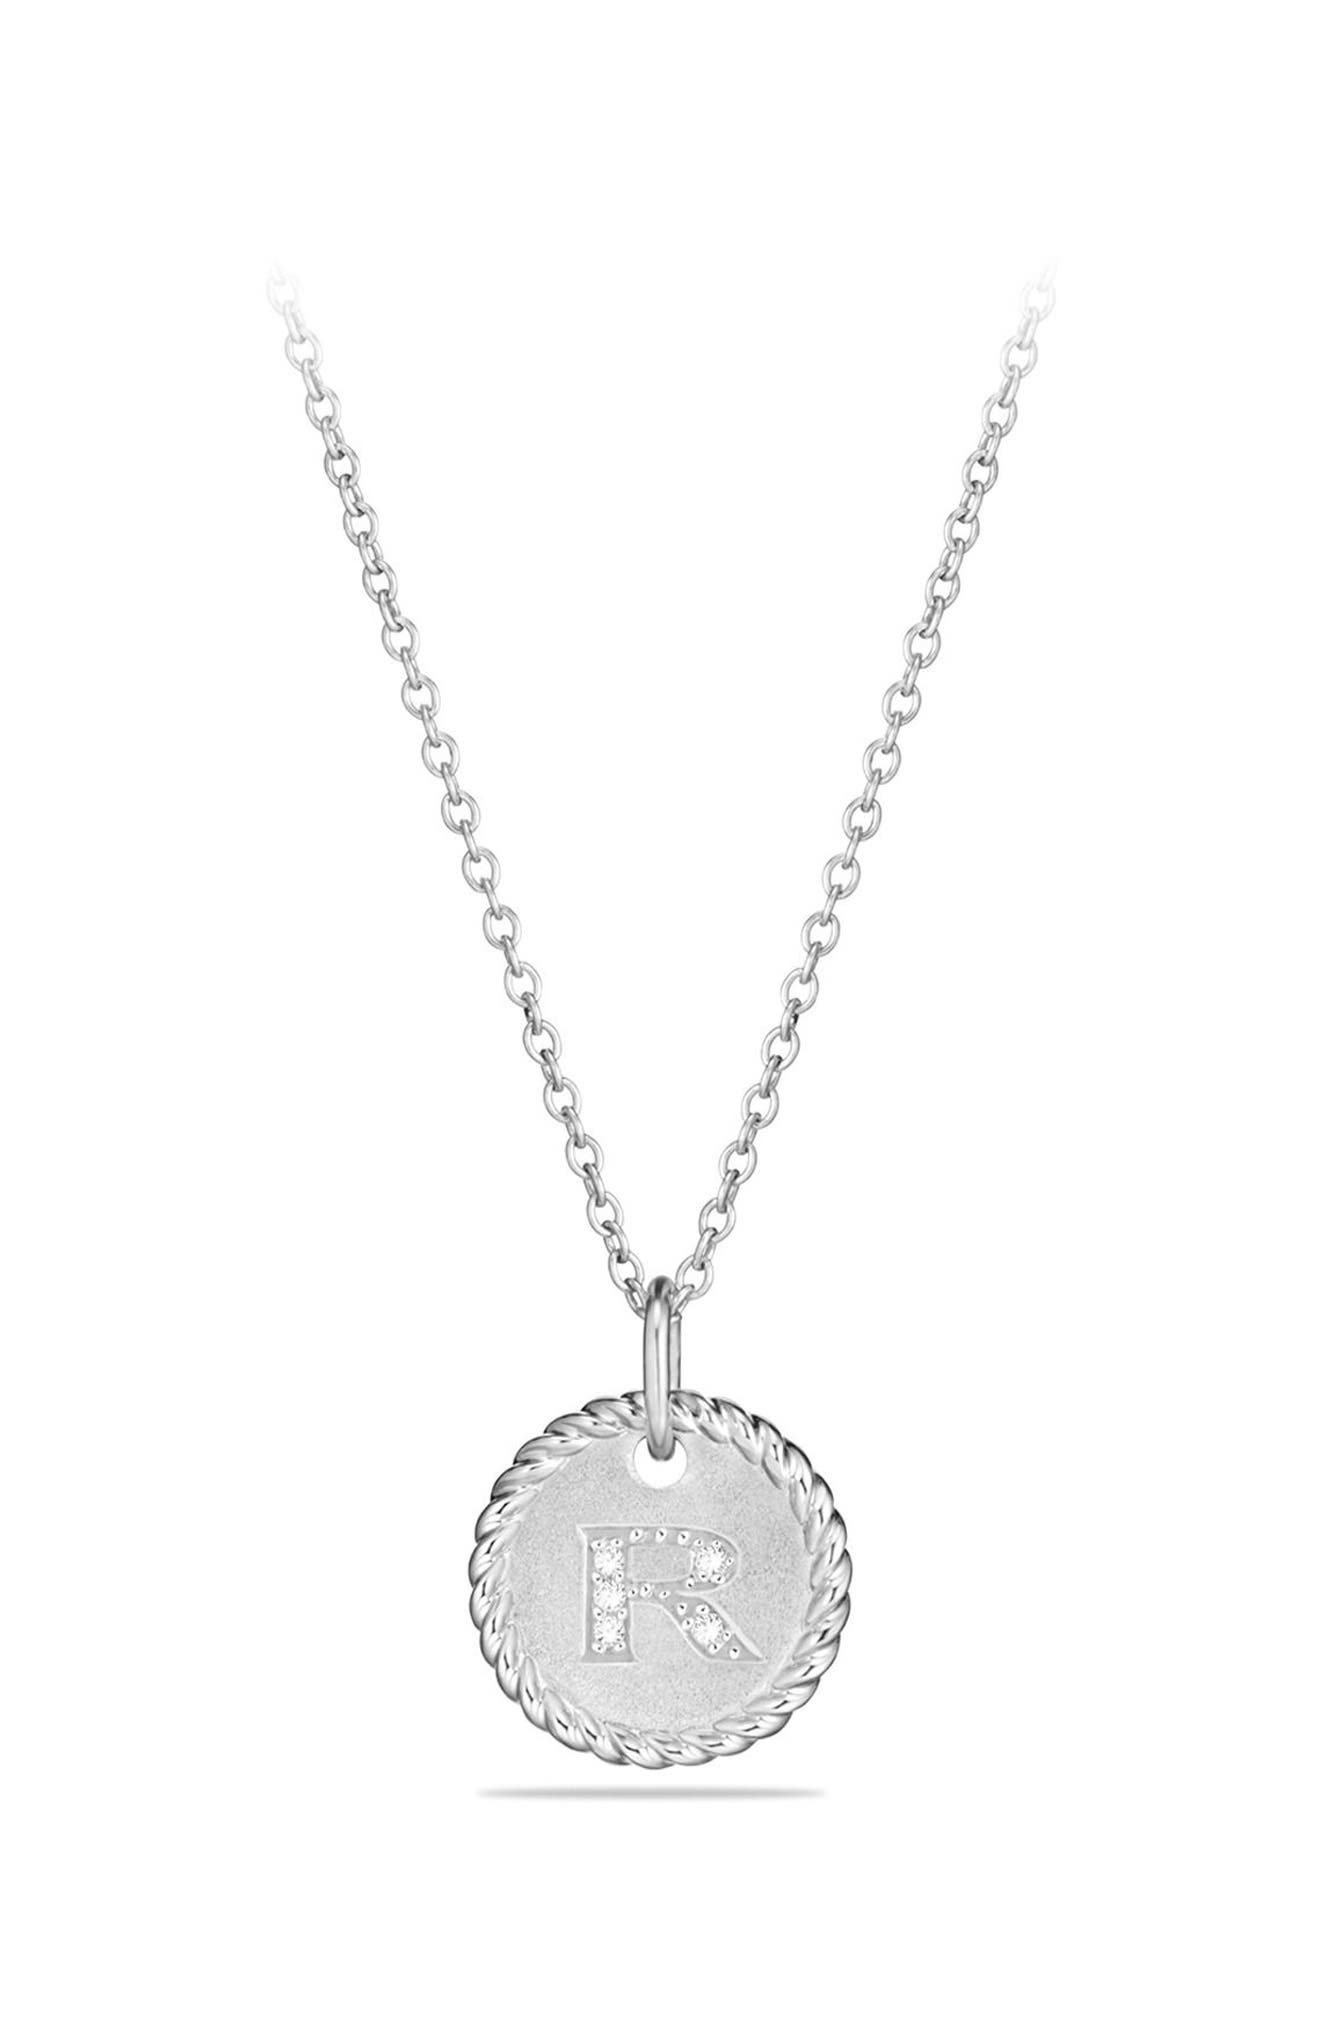 David Yurman Initial Charm Necklace with Diamonds in 18K White Gold